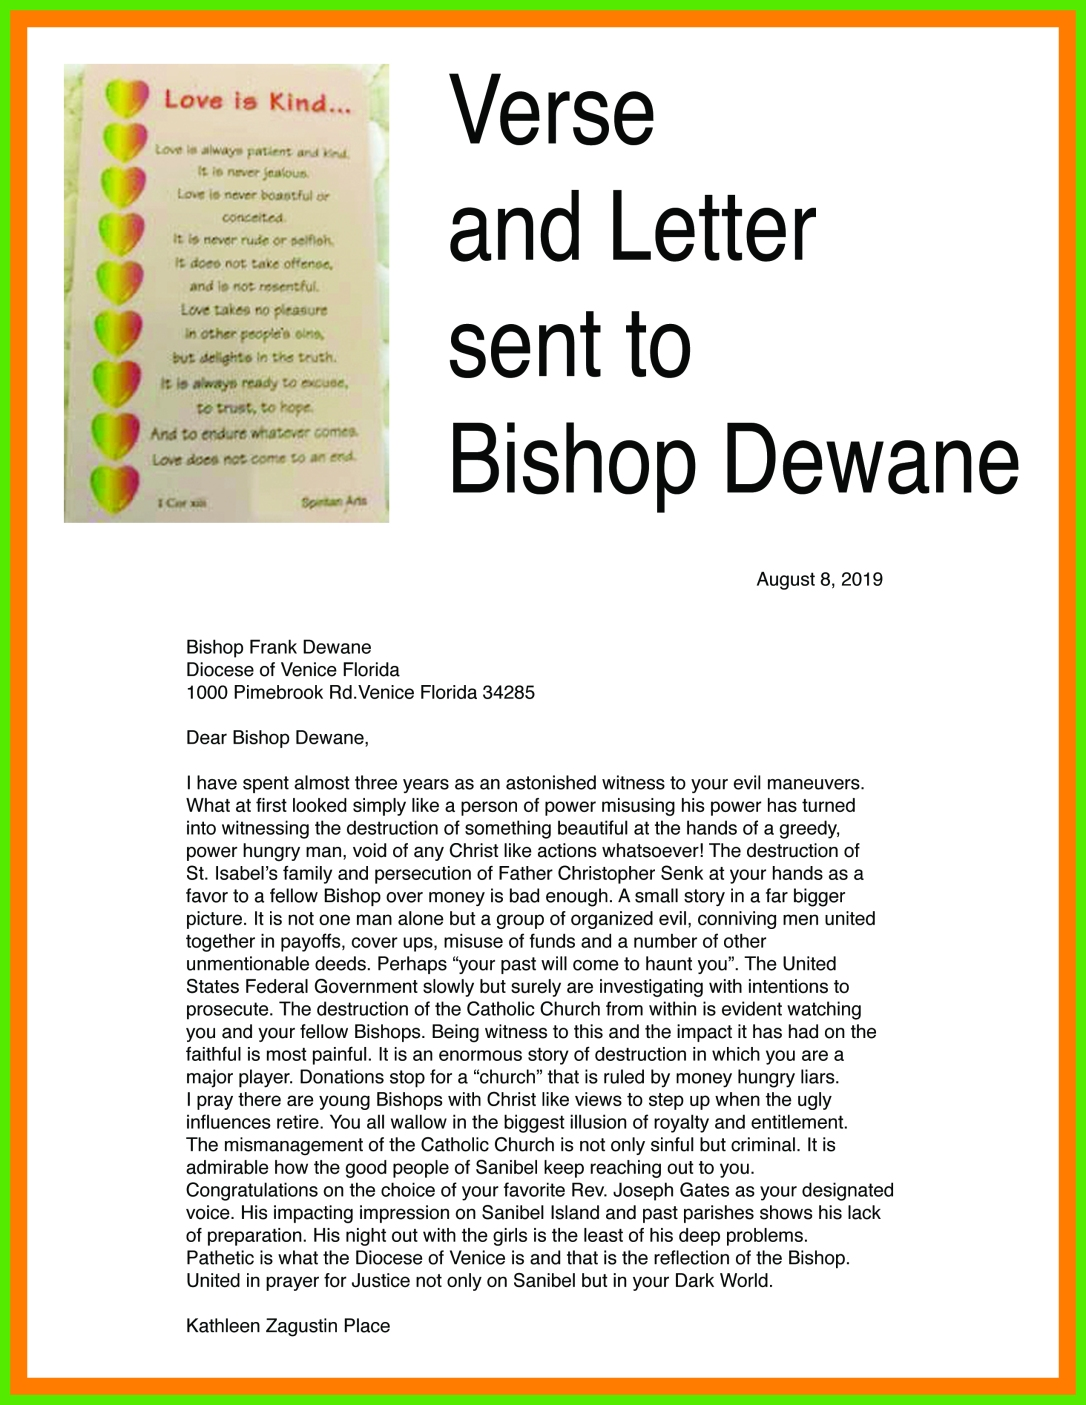 KZP letter to BFD 8-8-19